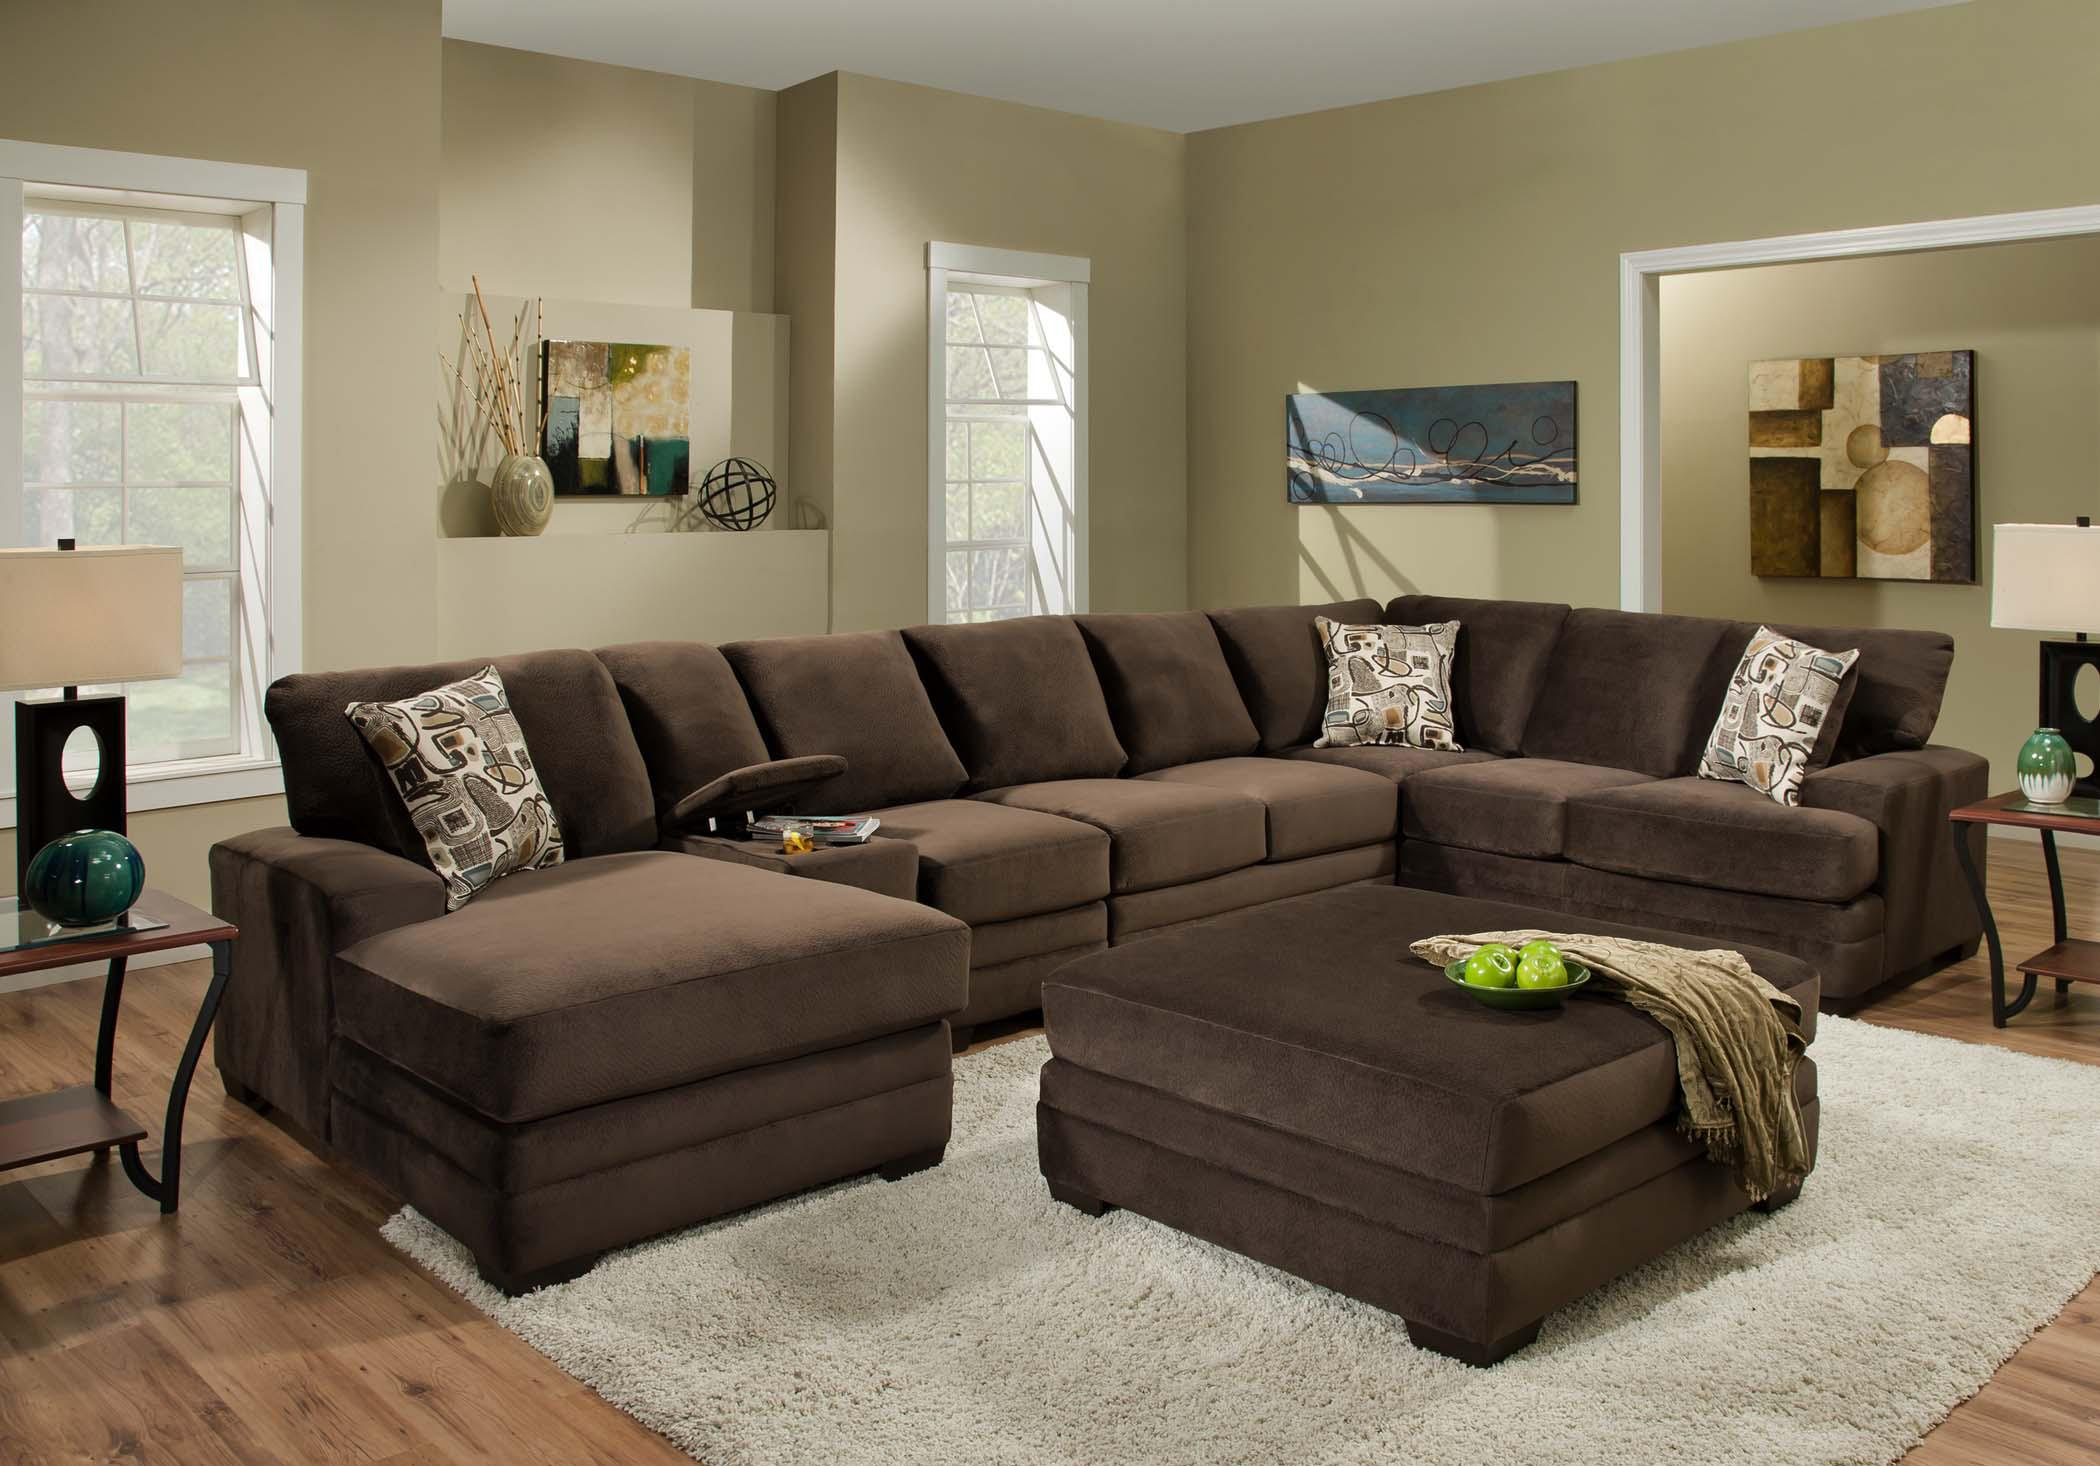 Interesting wilcox furniture for home furniture with wilcox furniture corpus christi